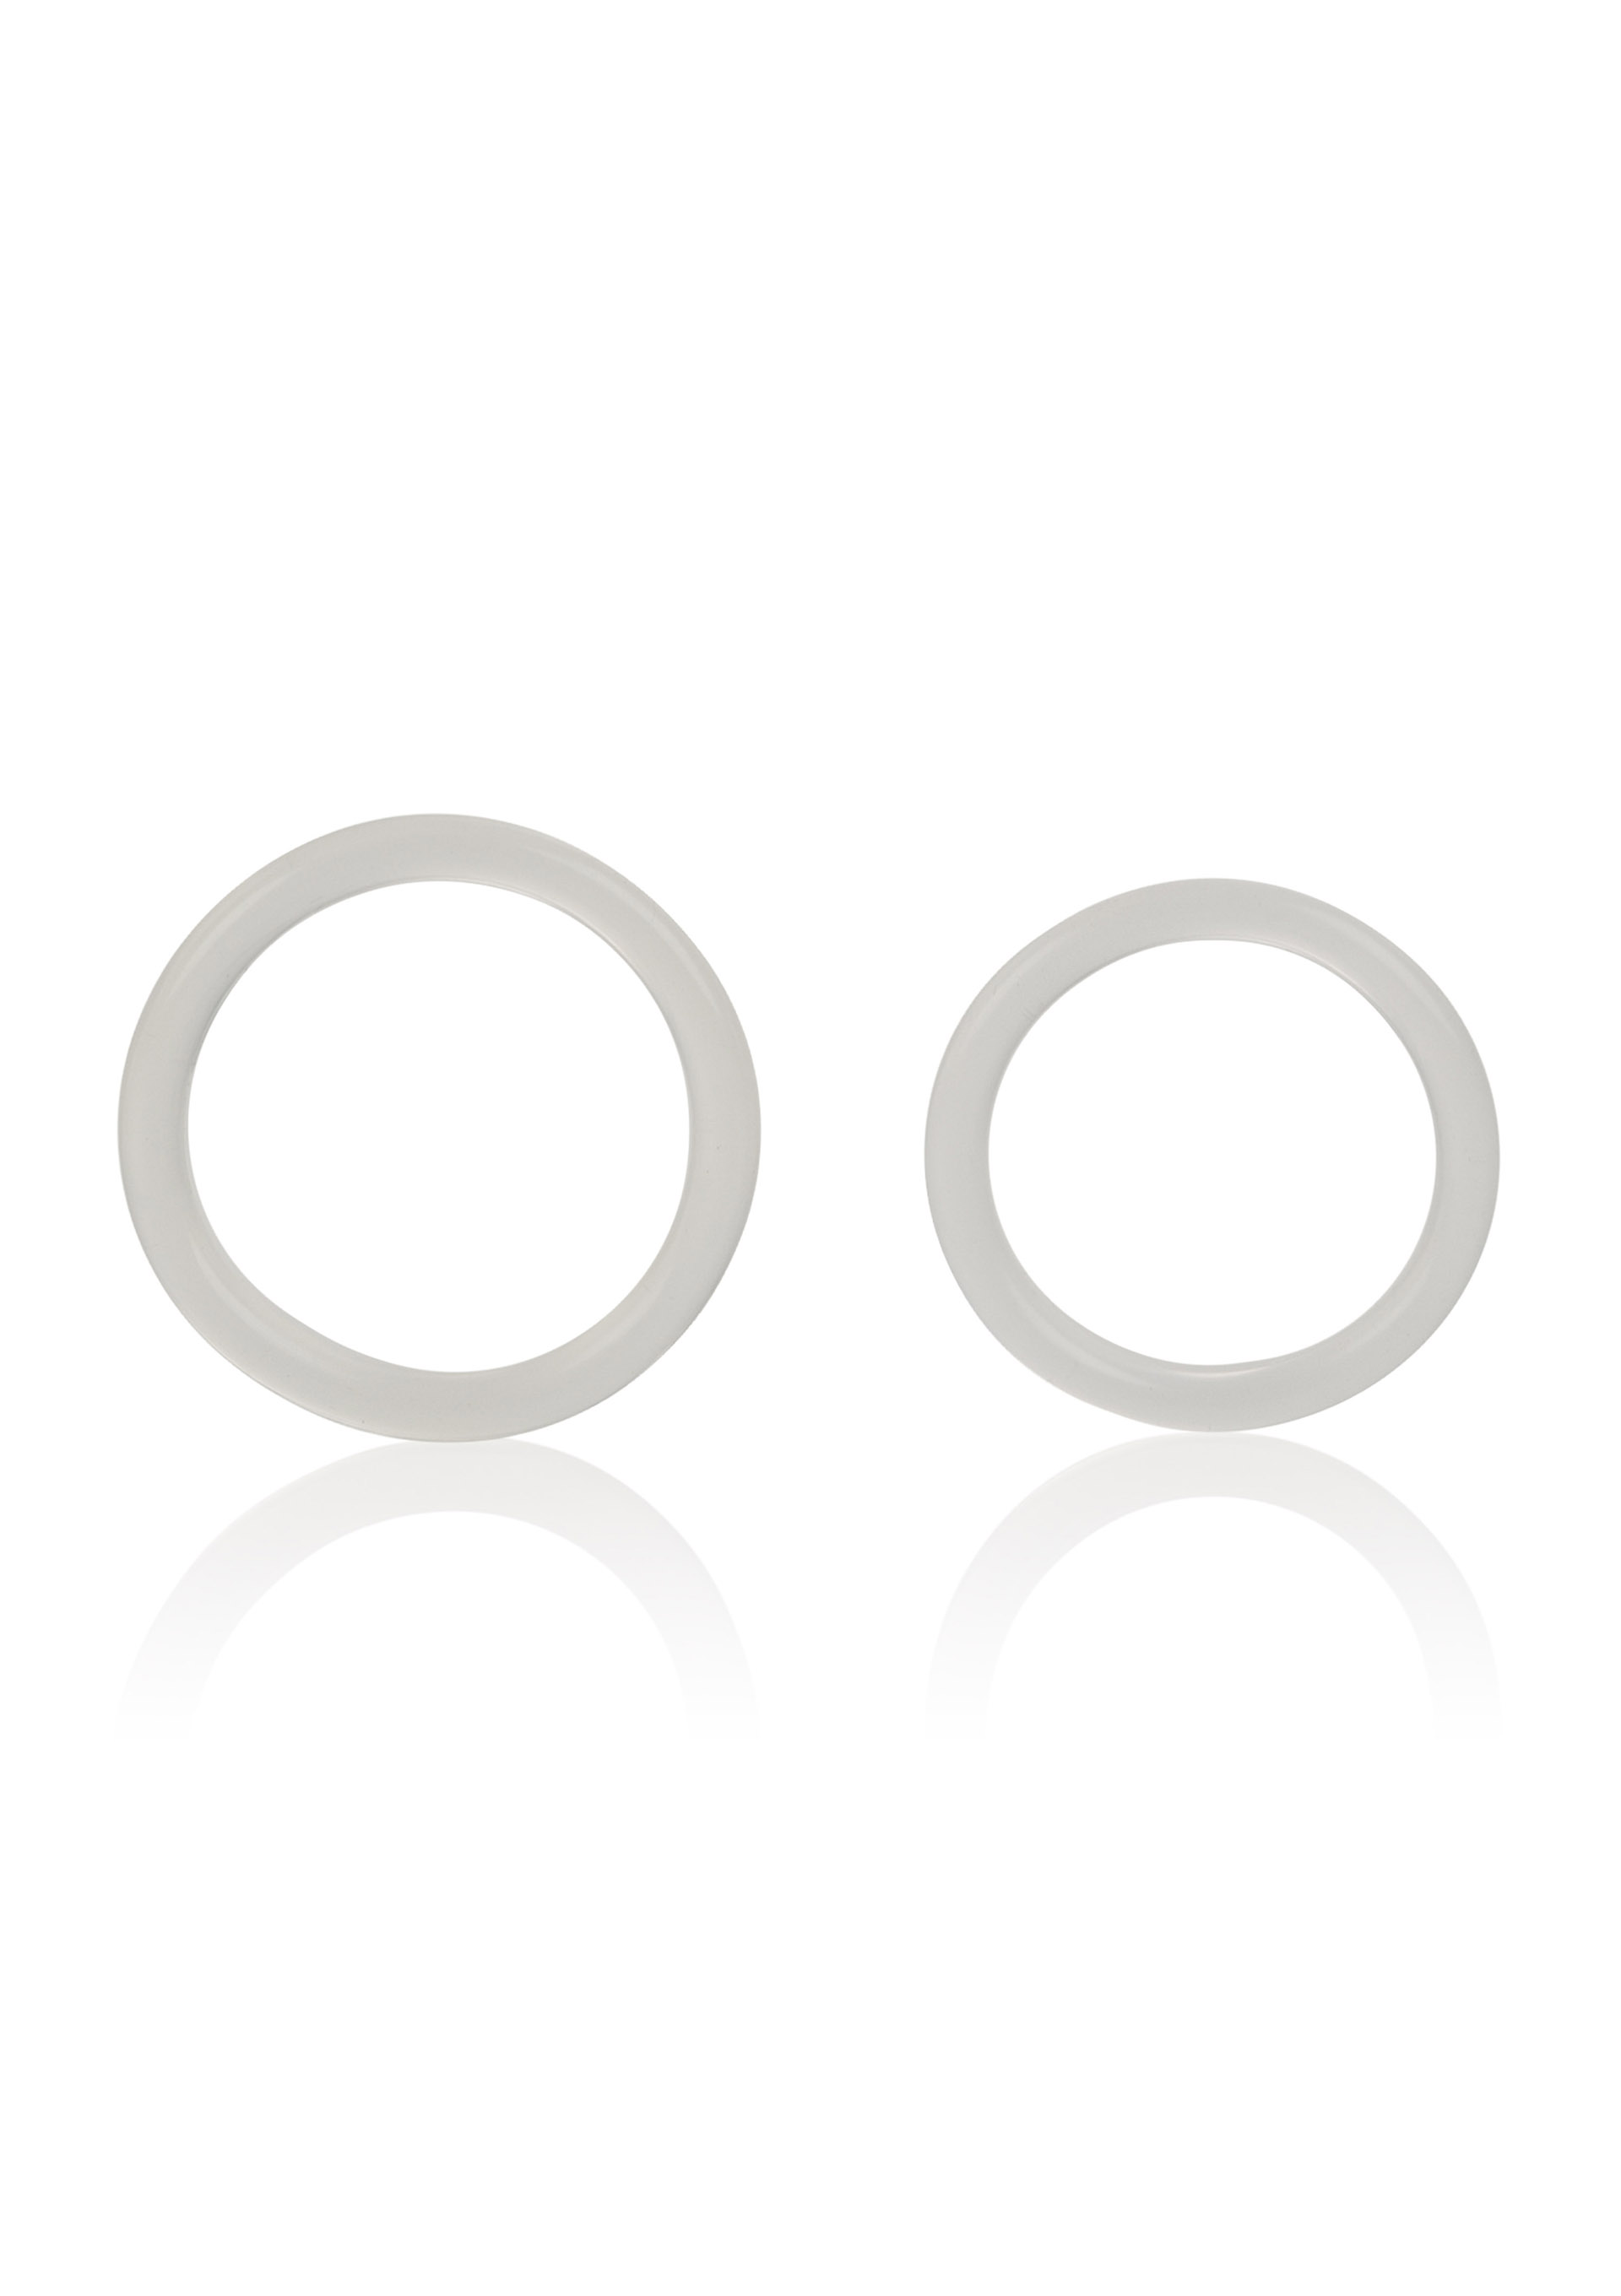 SILICONE RINGS LARGE & XLARGE CLEAR